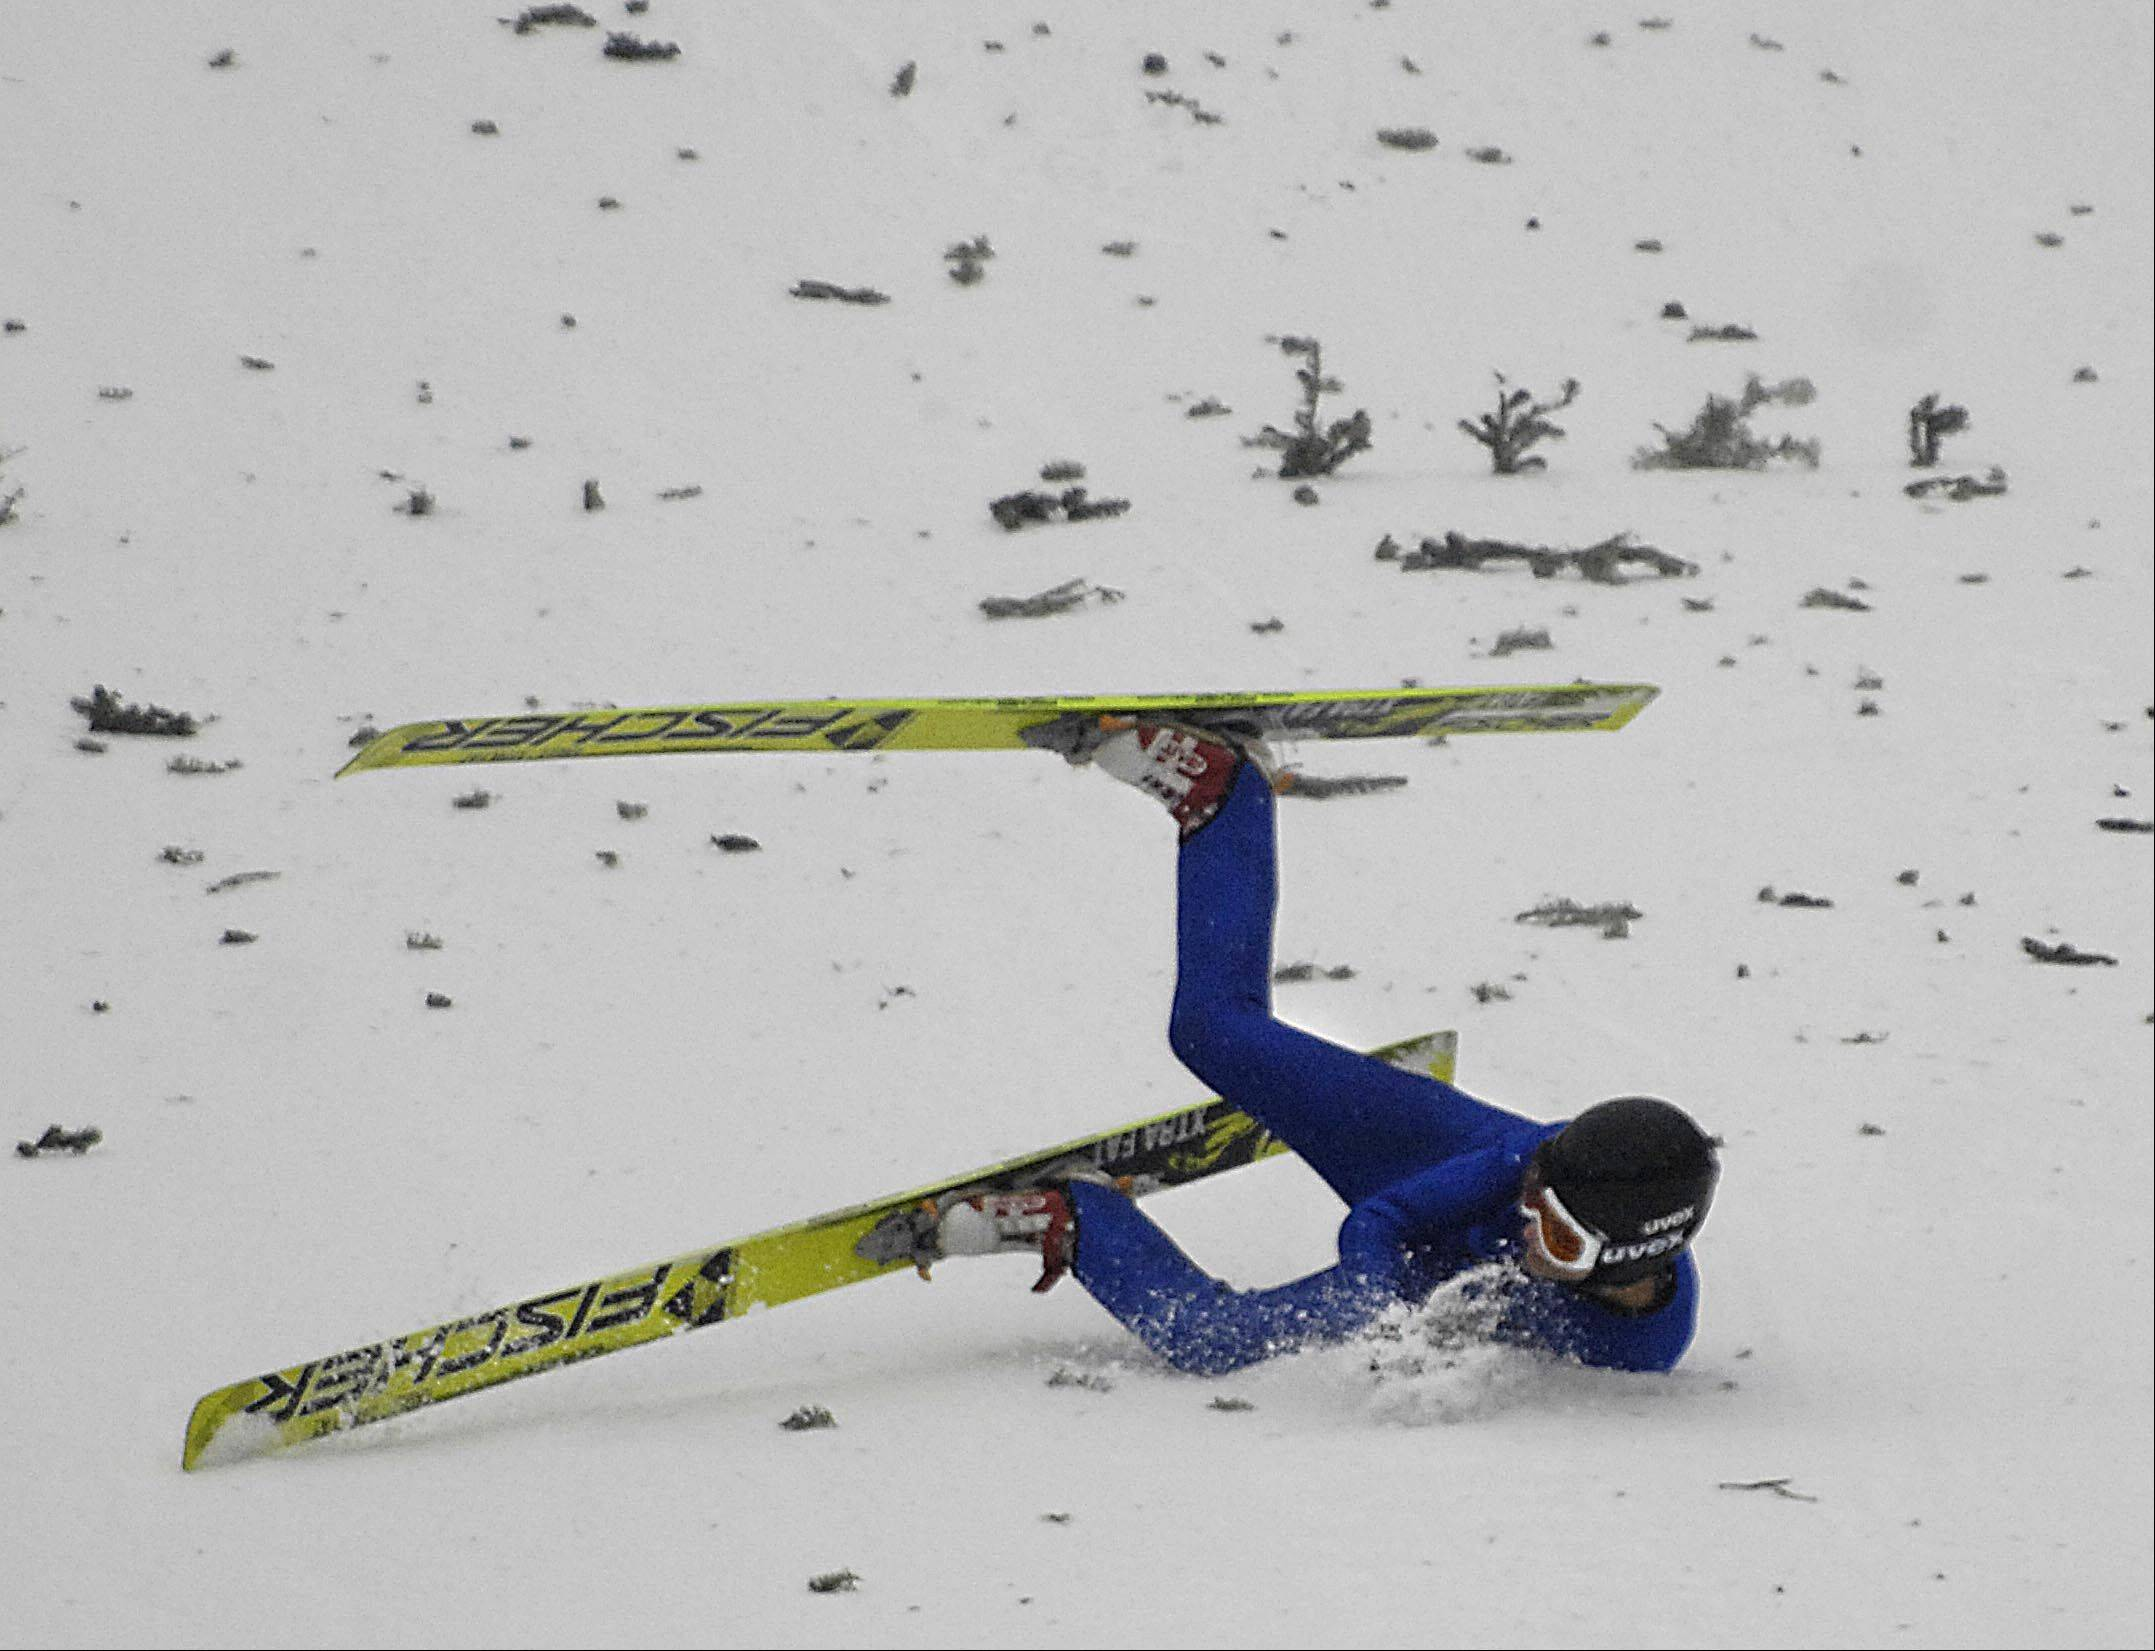 Rolf Ole Sommerstad, of Norway, tumbles to a stop after falling on his landing Sunday at the 108th Annual International Ski Jumping Tournament at Norge Ski Club Hill in Fox River Grove. The pieces of pine trees are stuck in the snow to give depth and dimension to help the jumpers locate the ground.